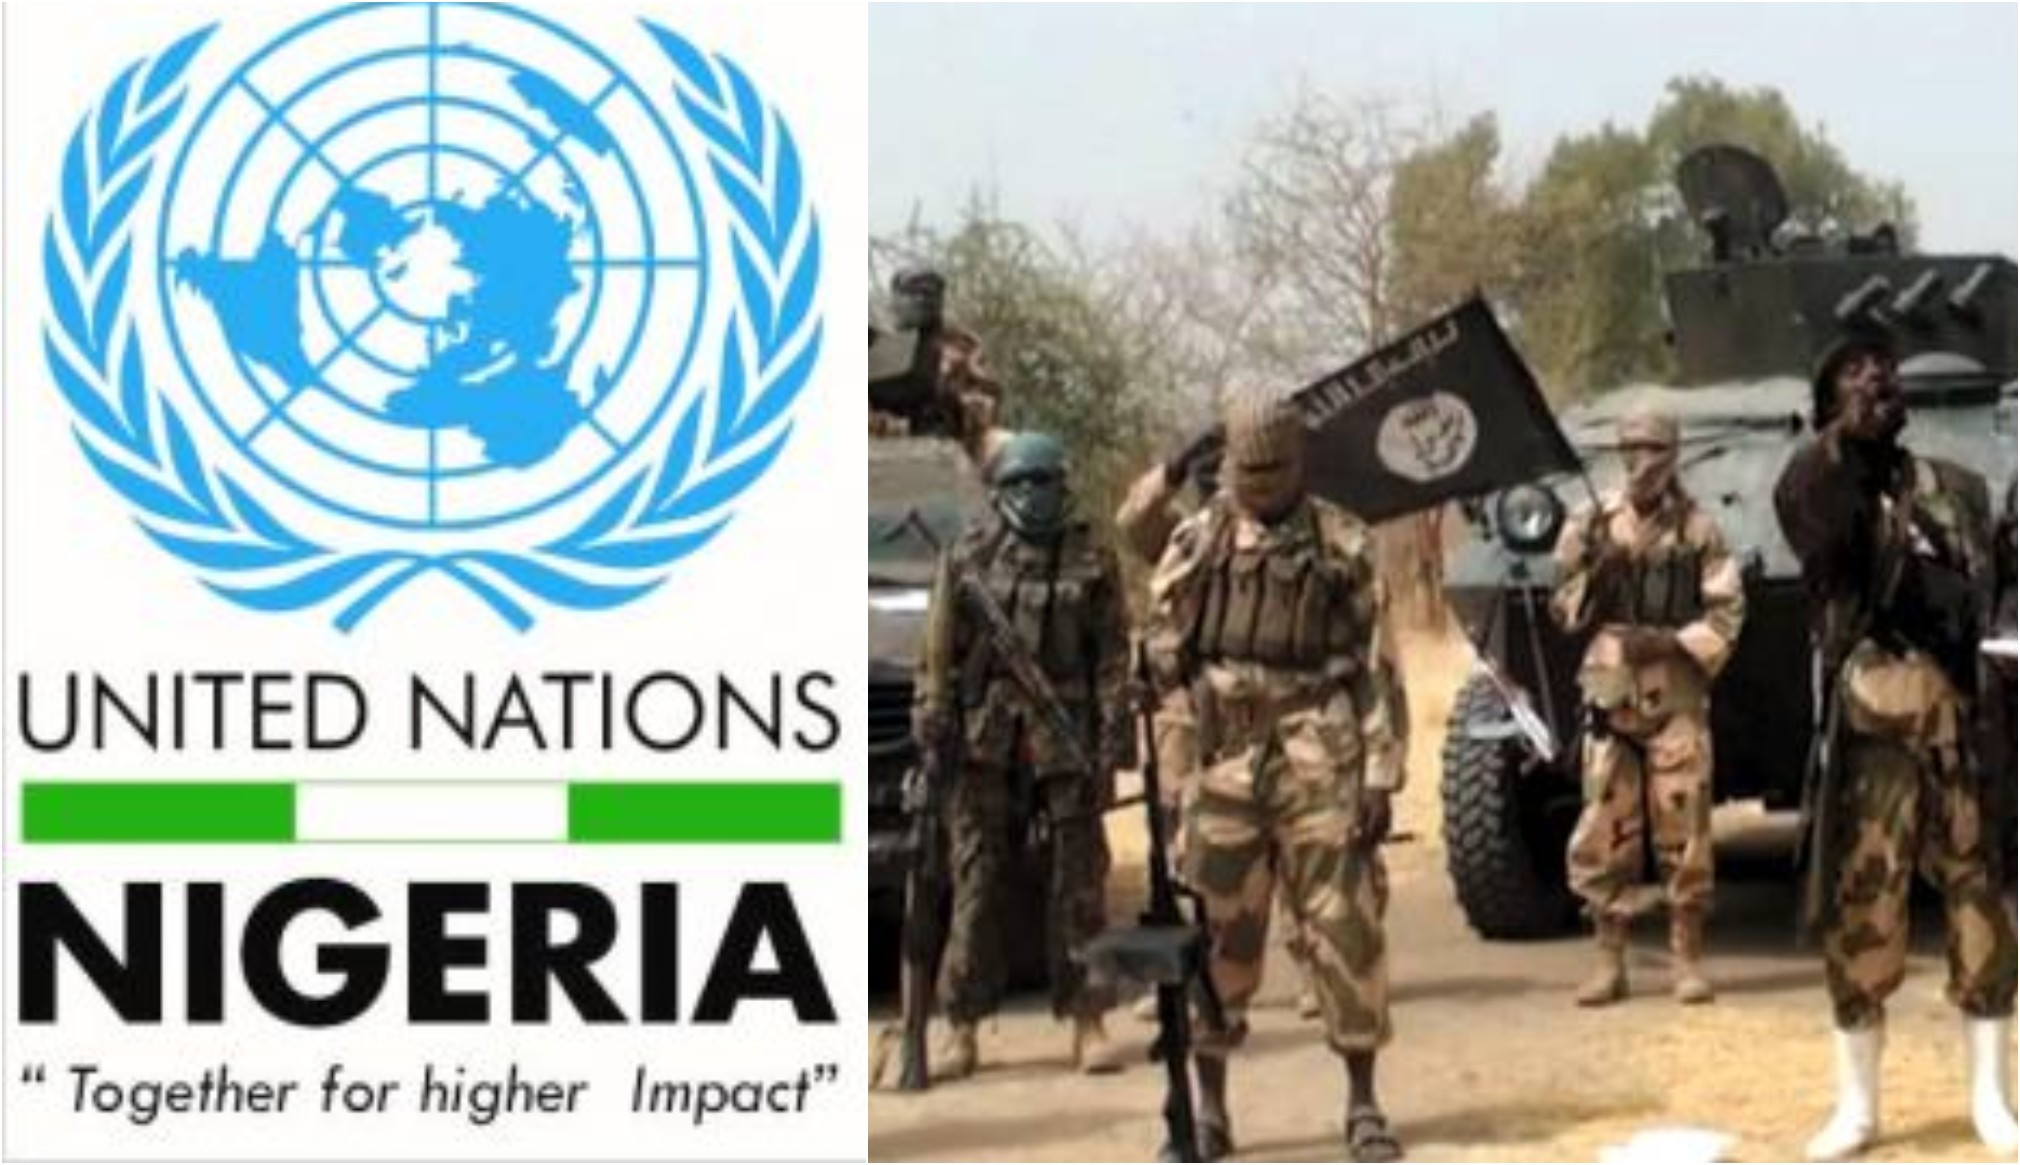 Boko Haram have more checkpoints in the North-East now - UN